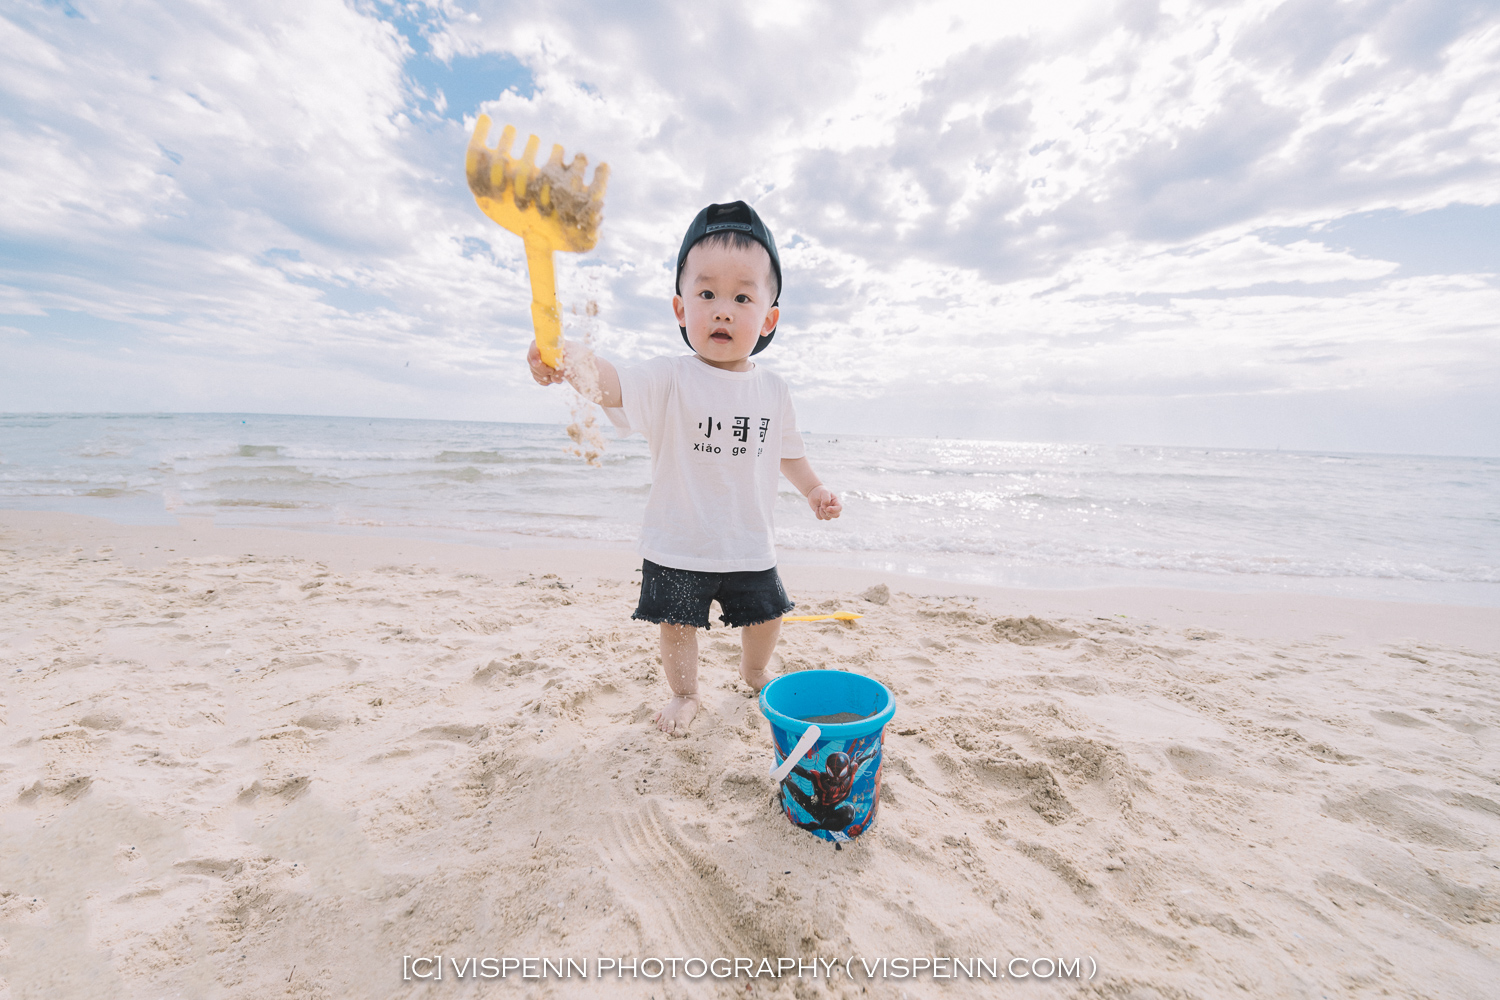 Melbourne Newborn Baby Family Photo BaoBao VISPENN 墨尔本 儿童 宝宝 百天照 满月照 孕妇照 全家福 KIDS VISPENN QingYu 8308